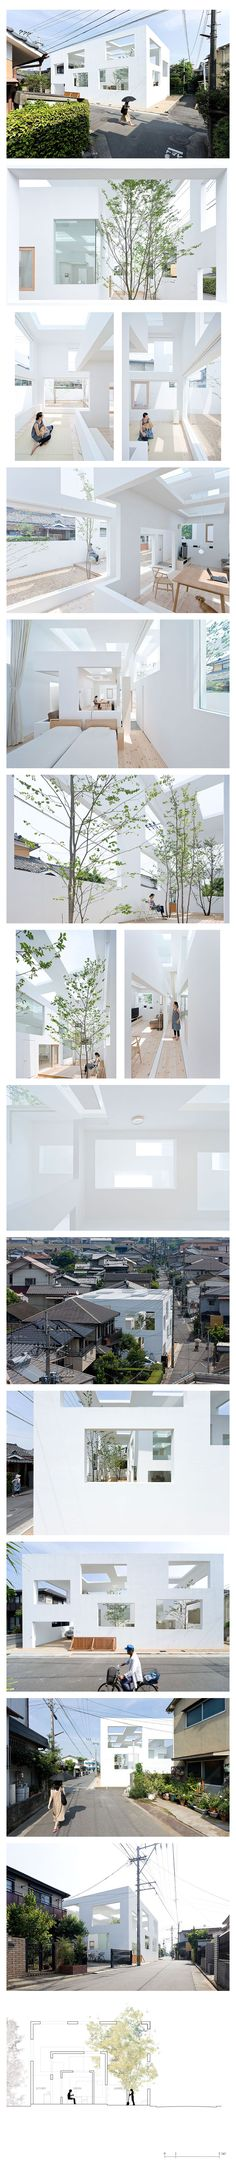 House N Architect: Sou Fujimoto Location: Oita, Japan Year built: 2007-2008